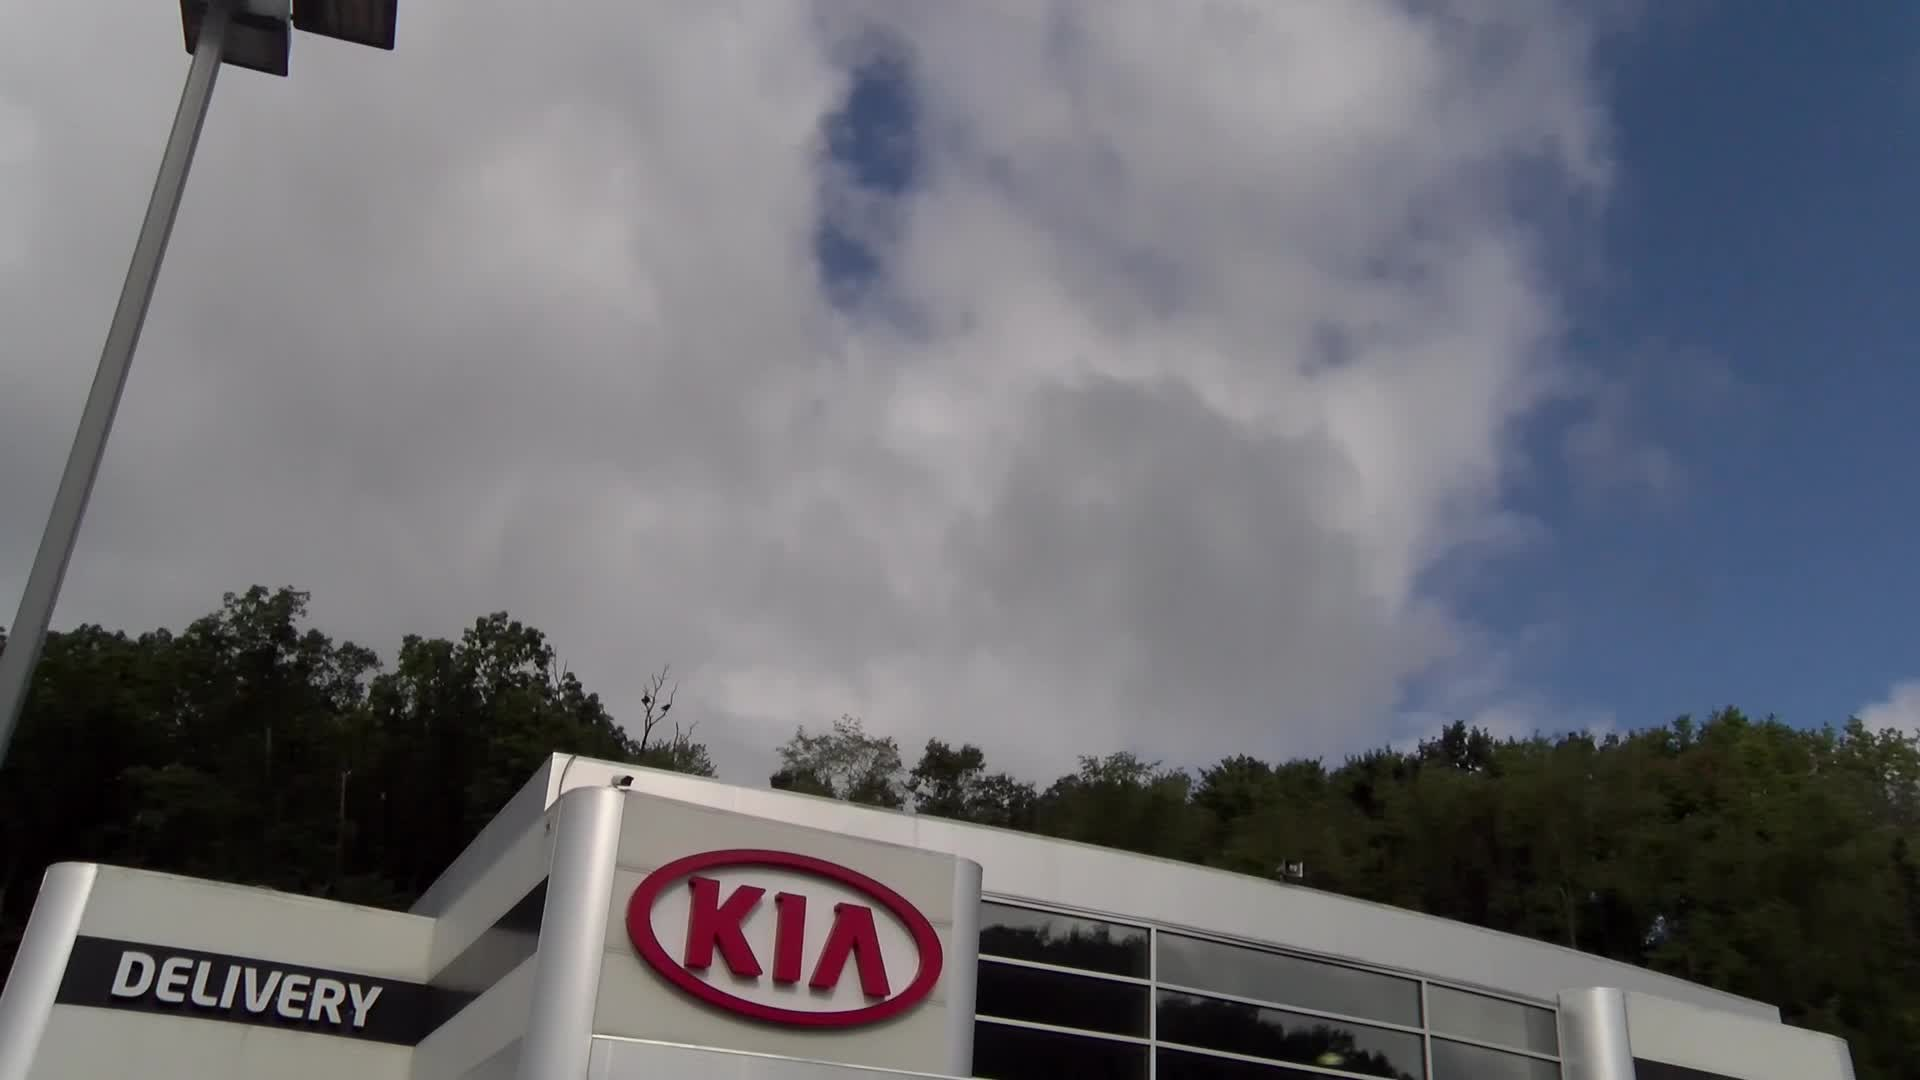 Cole Kia | New & Used Kia Dealer in Bluefield, WV | New Kia Sales